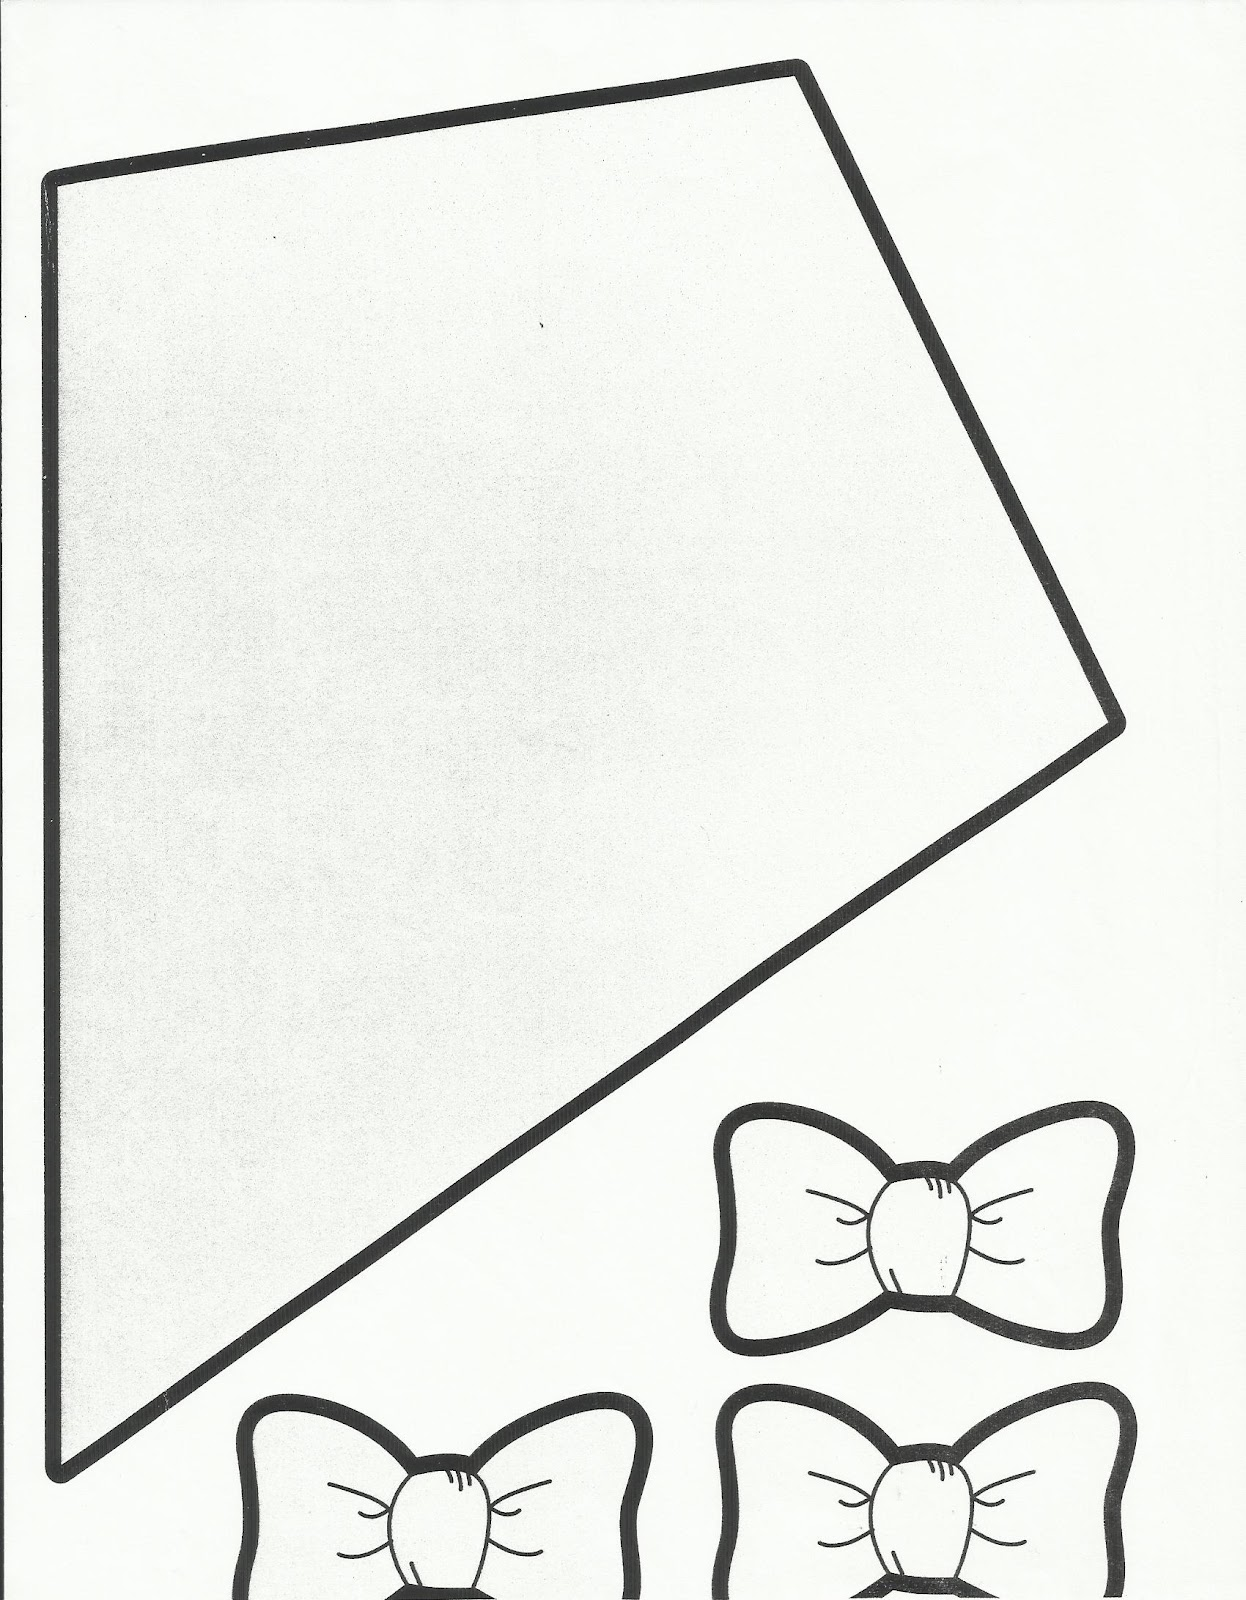 Kite Template For Kids